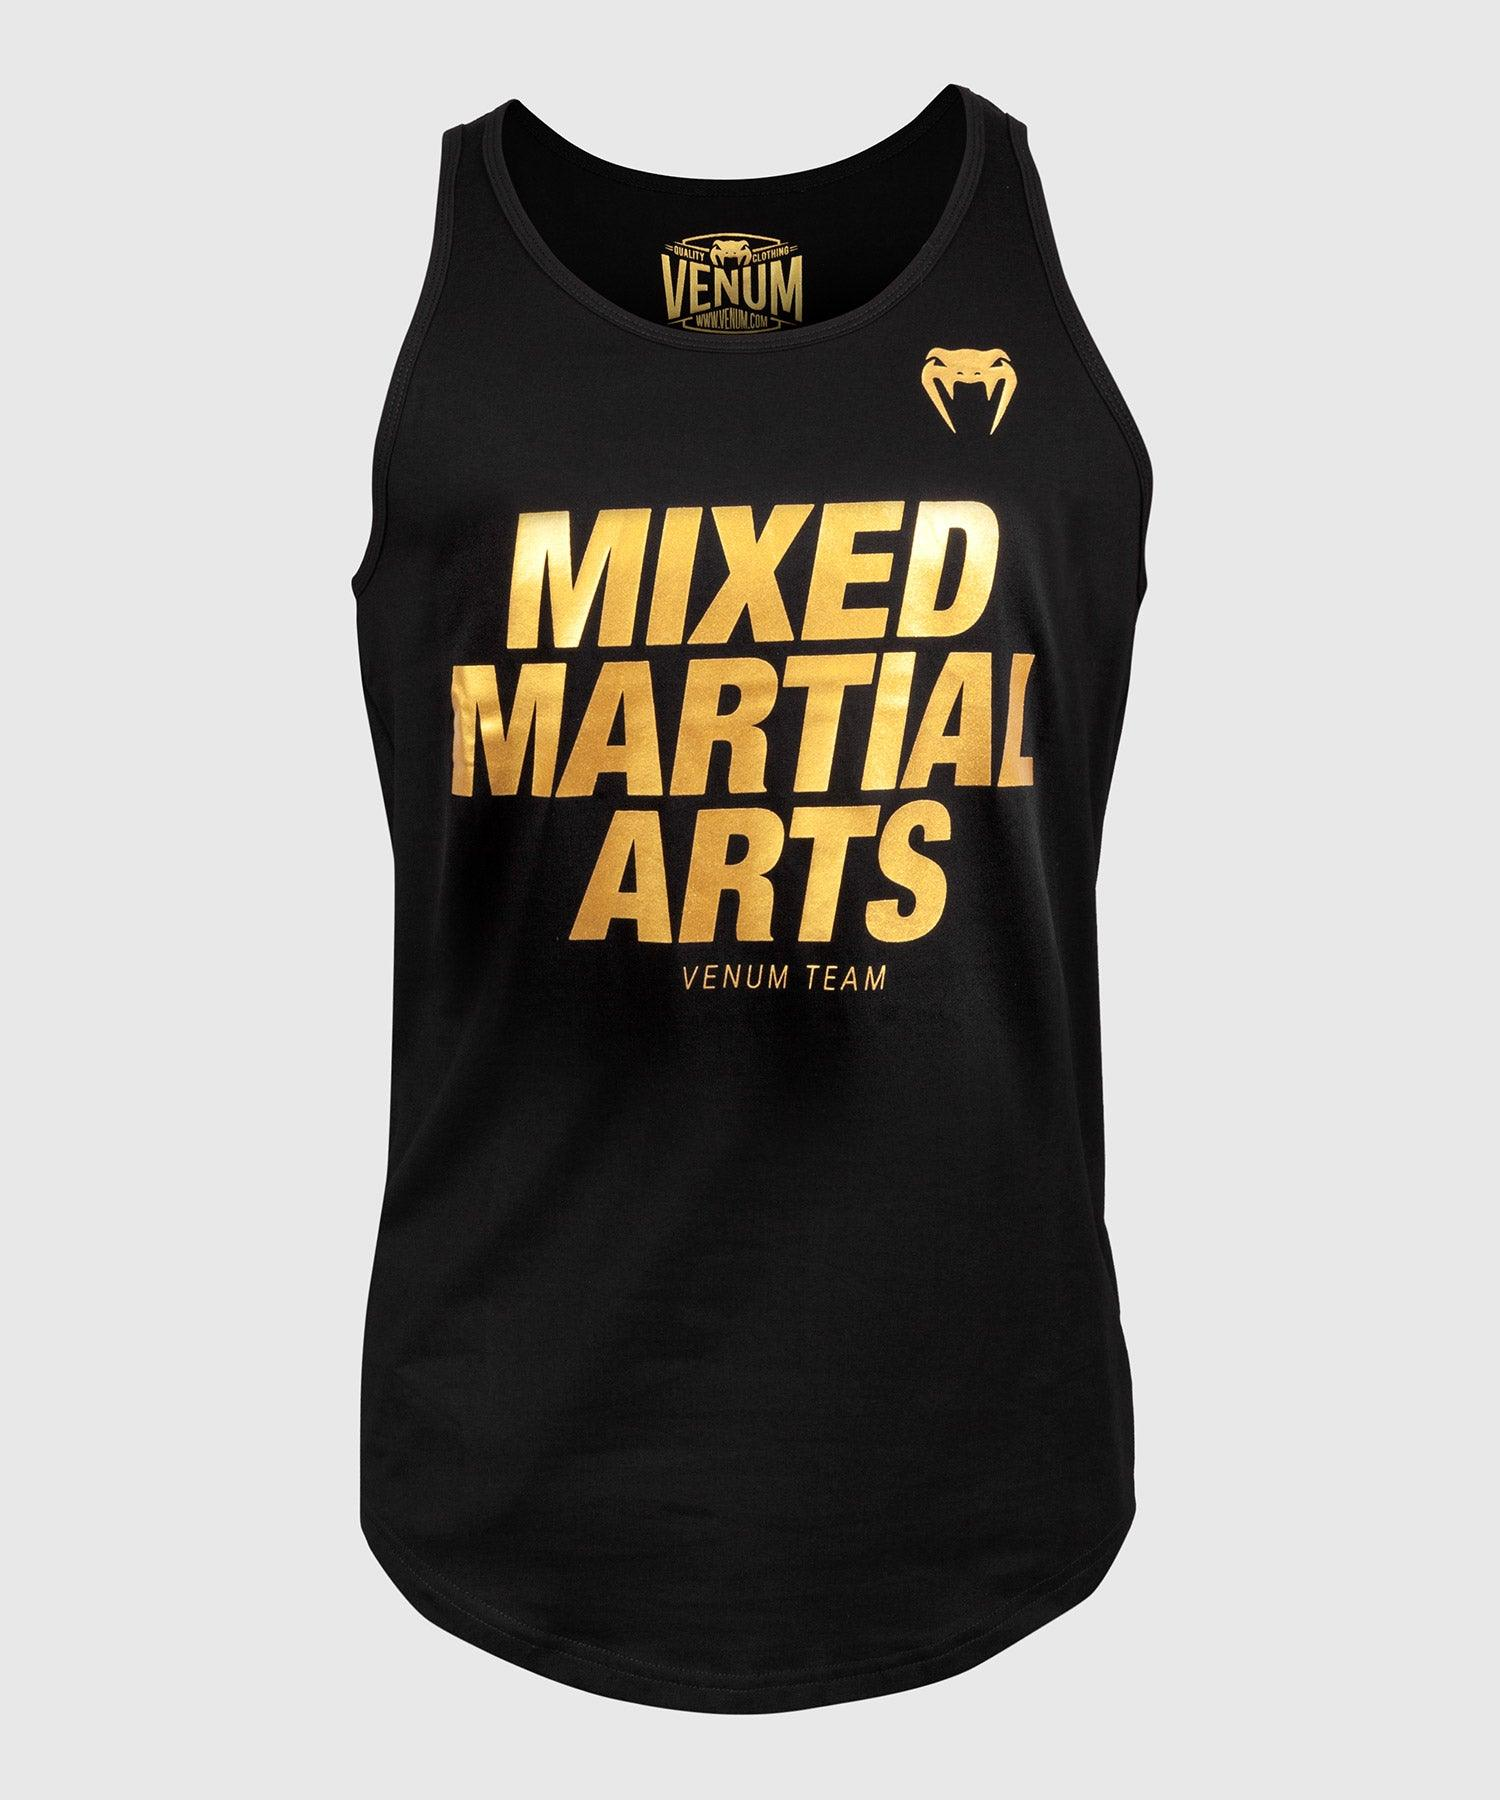 Venum MMA VT Tank Top - Black/Gold picture 1